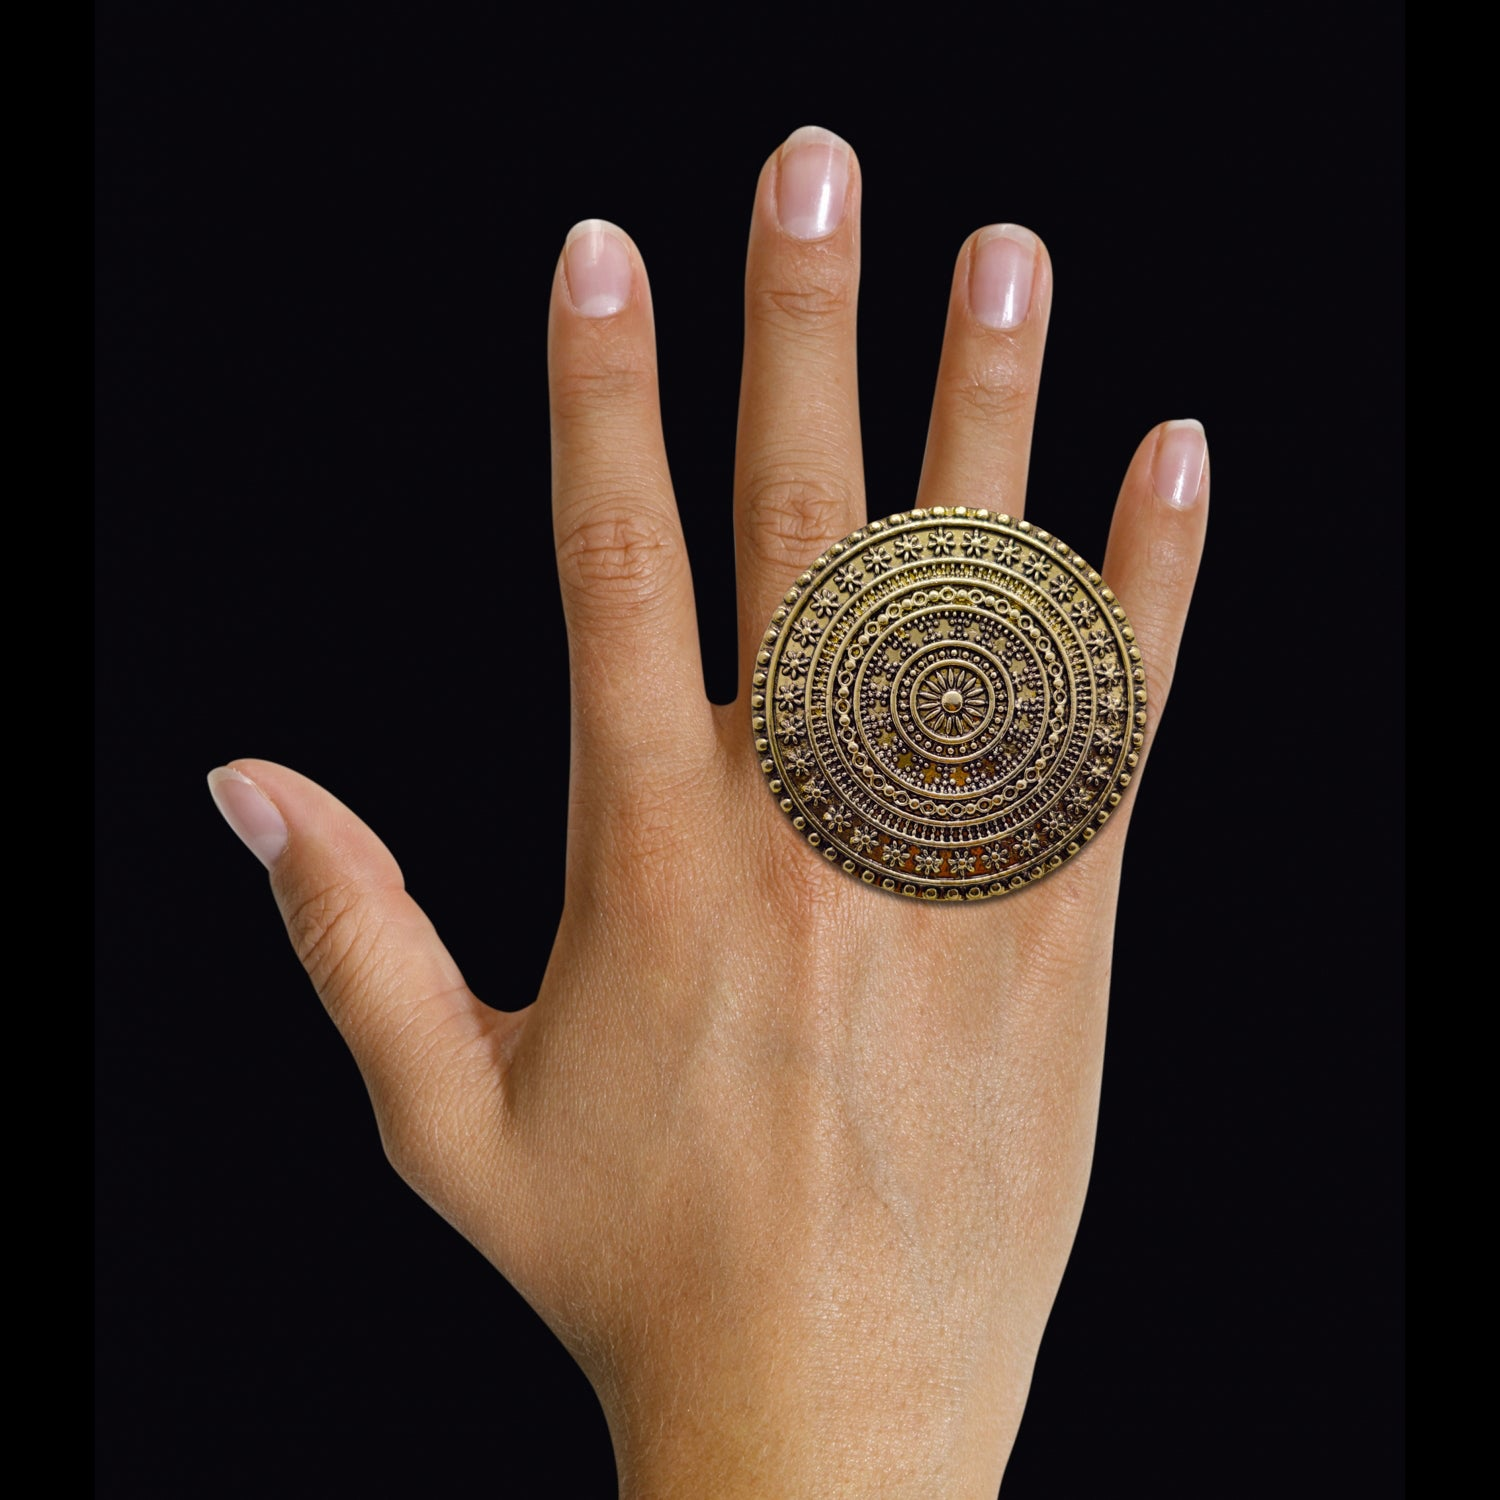 Concentric Dainty Finger Ring (Antic Bronze) - 5.8cm Diameter